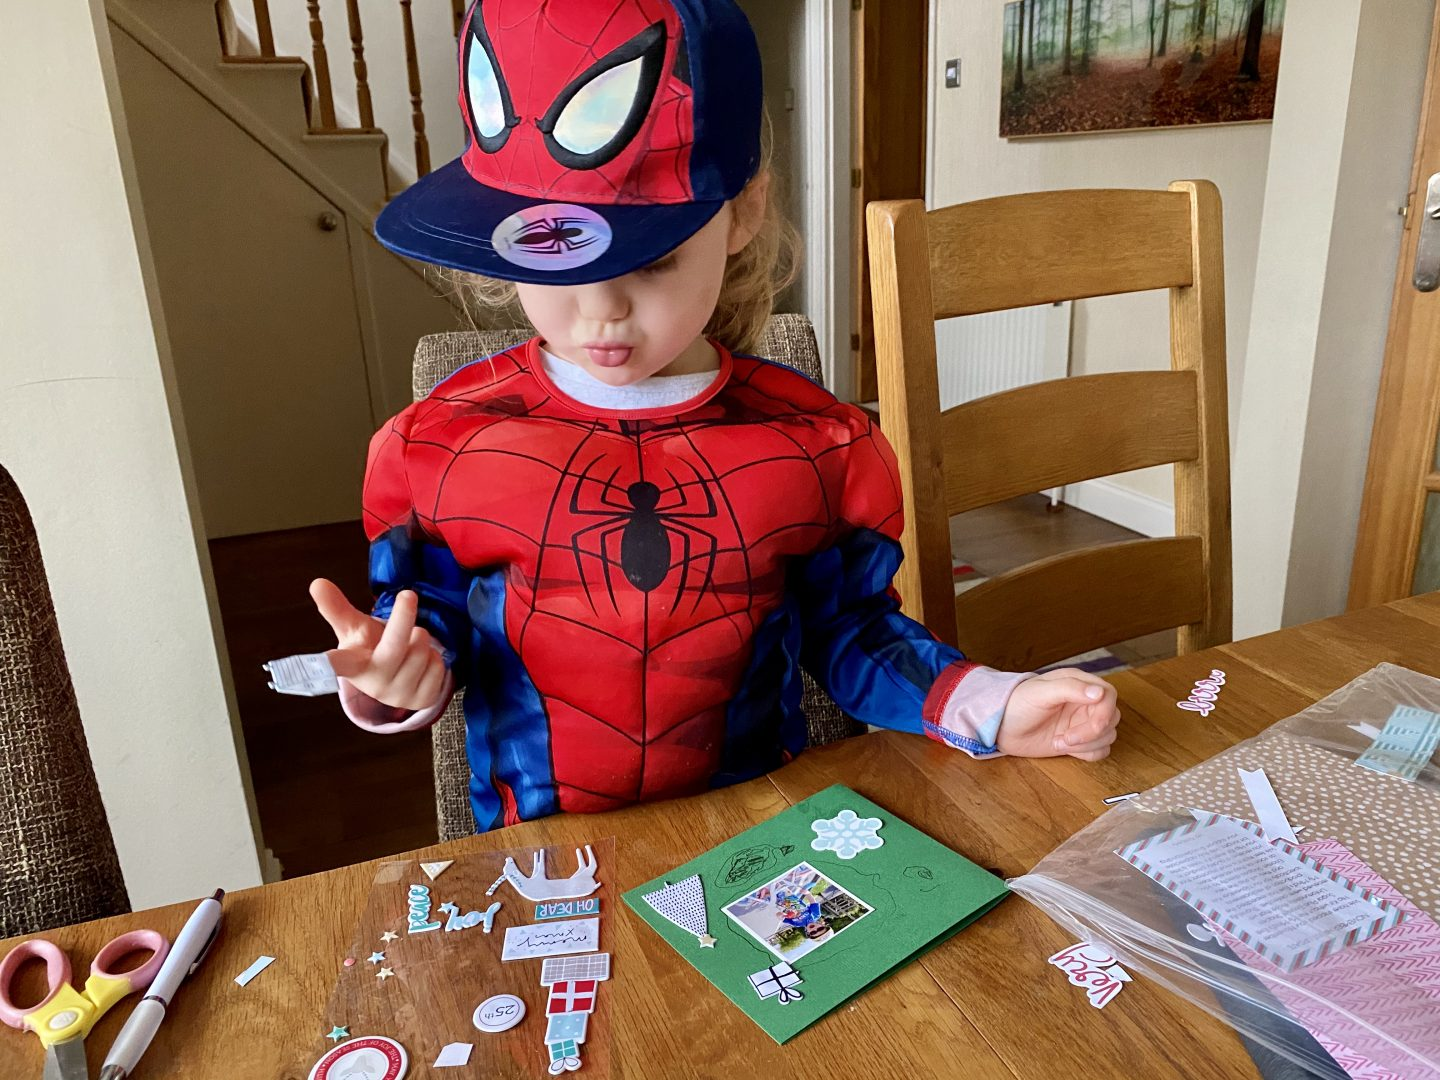 4 year old doing crafts